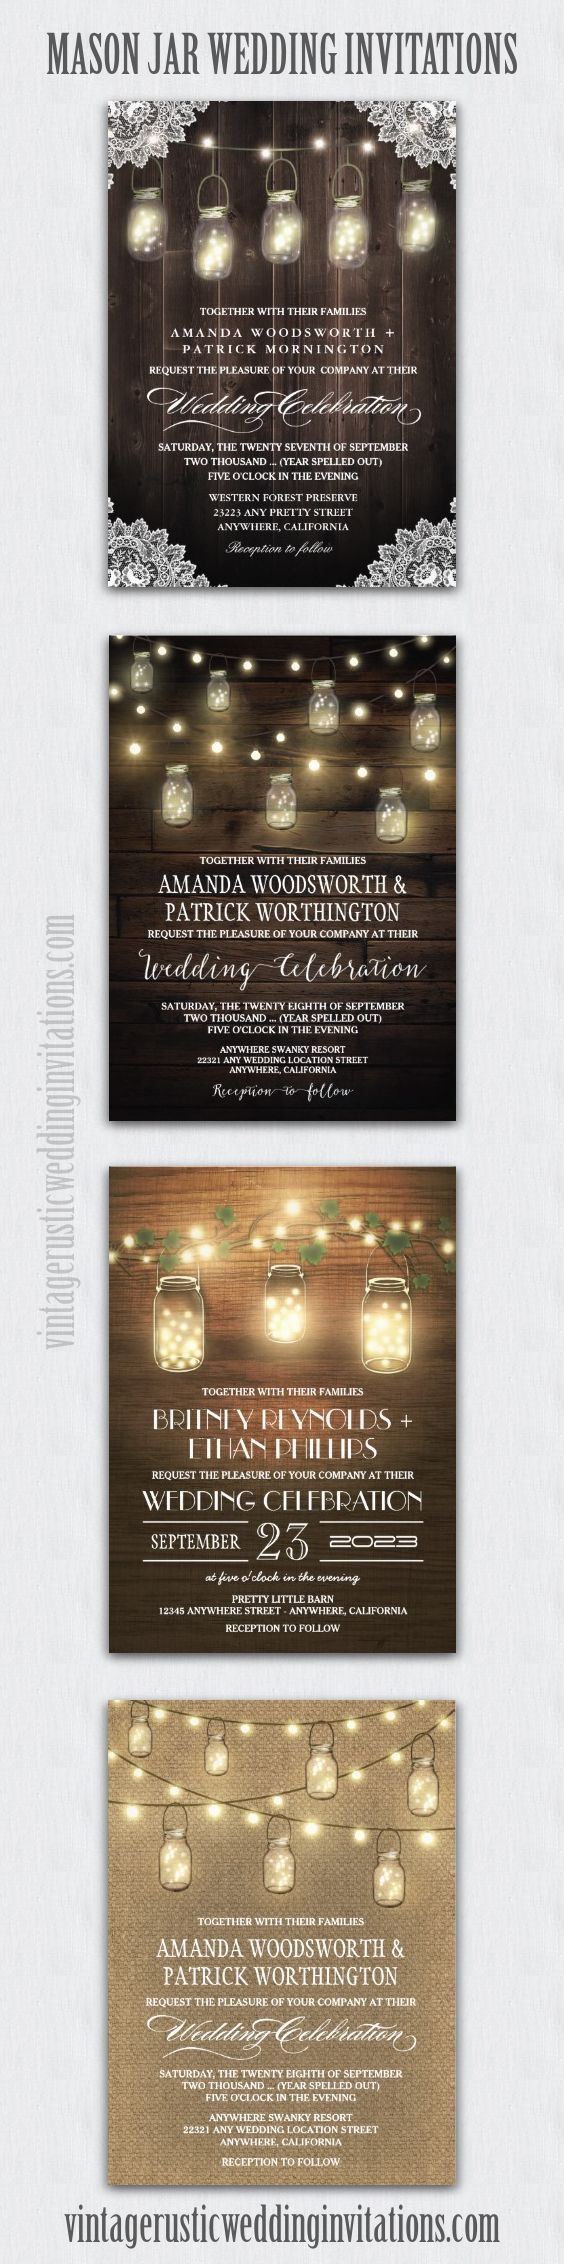 Mason jar wedding invitations - barn wood, burlap, string lights and more in rustic themes. #masonjarweddinginvitations  #countryweddinginvitations #mason #jar #wedding #invitations #country #rustic #rusticweddinginvitations